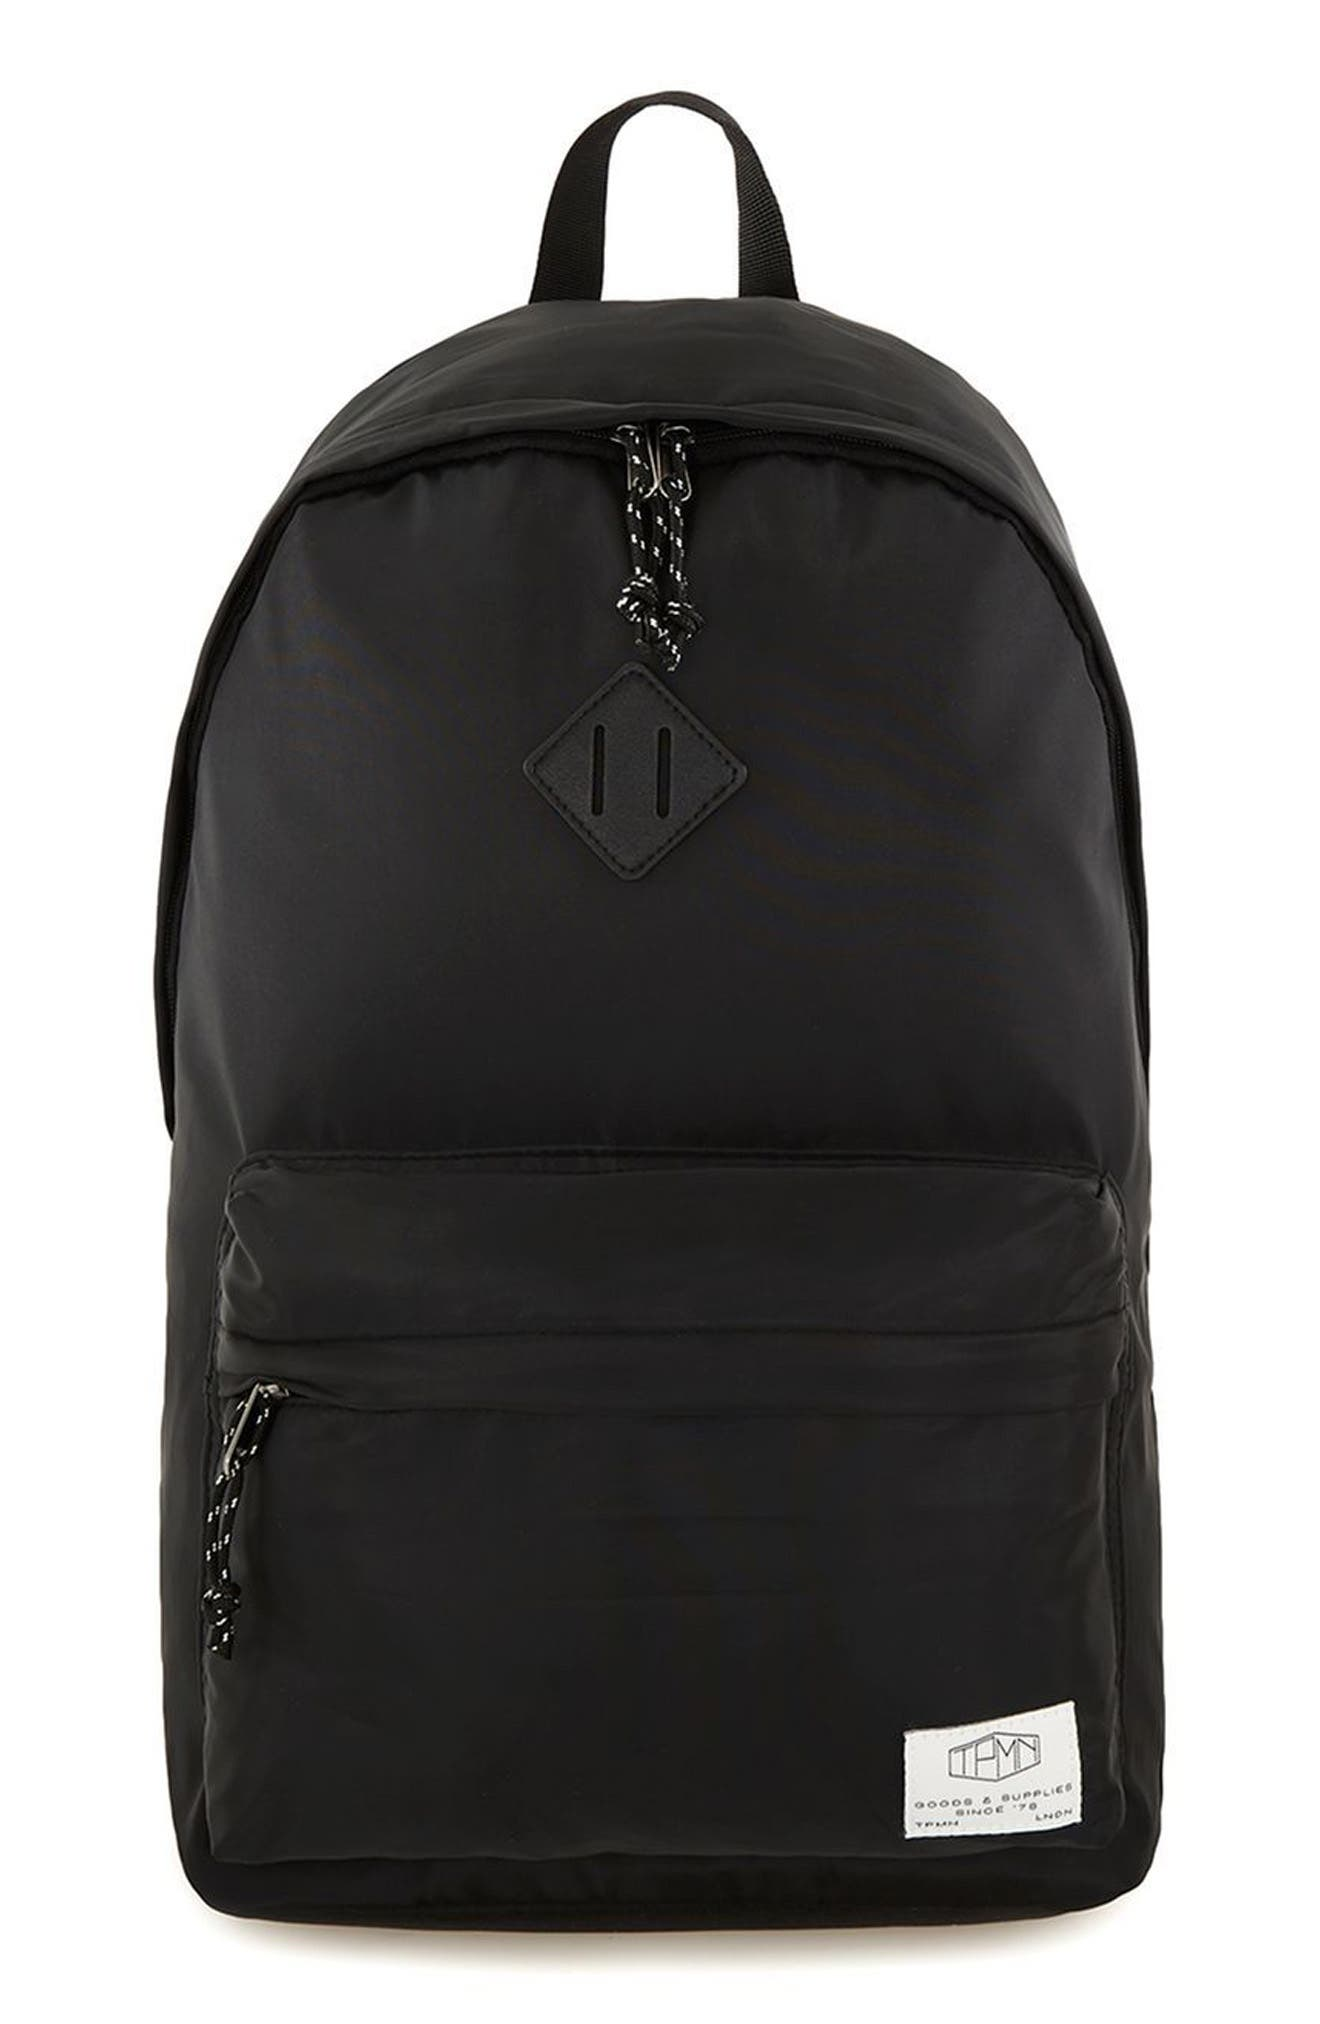 Ripstop Backpack,                         Main,                         color, Black